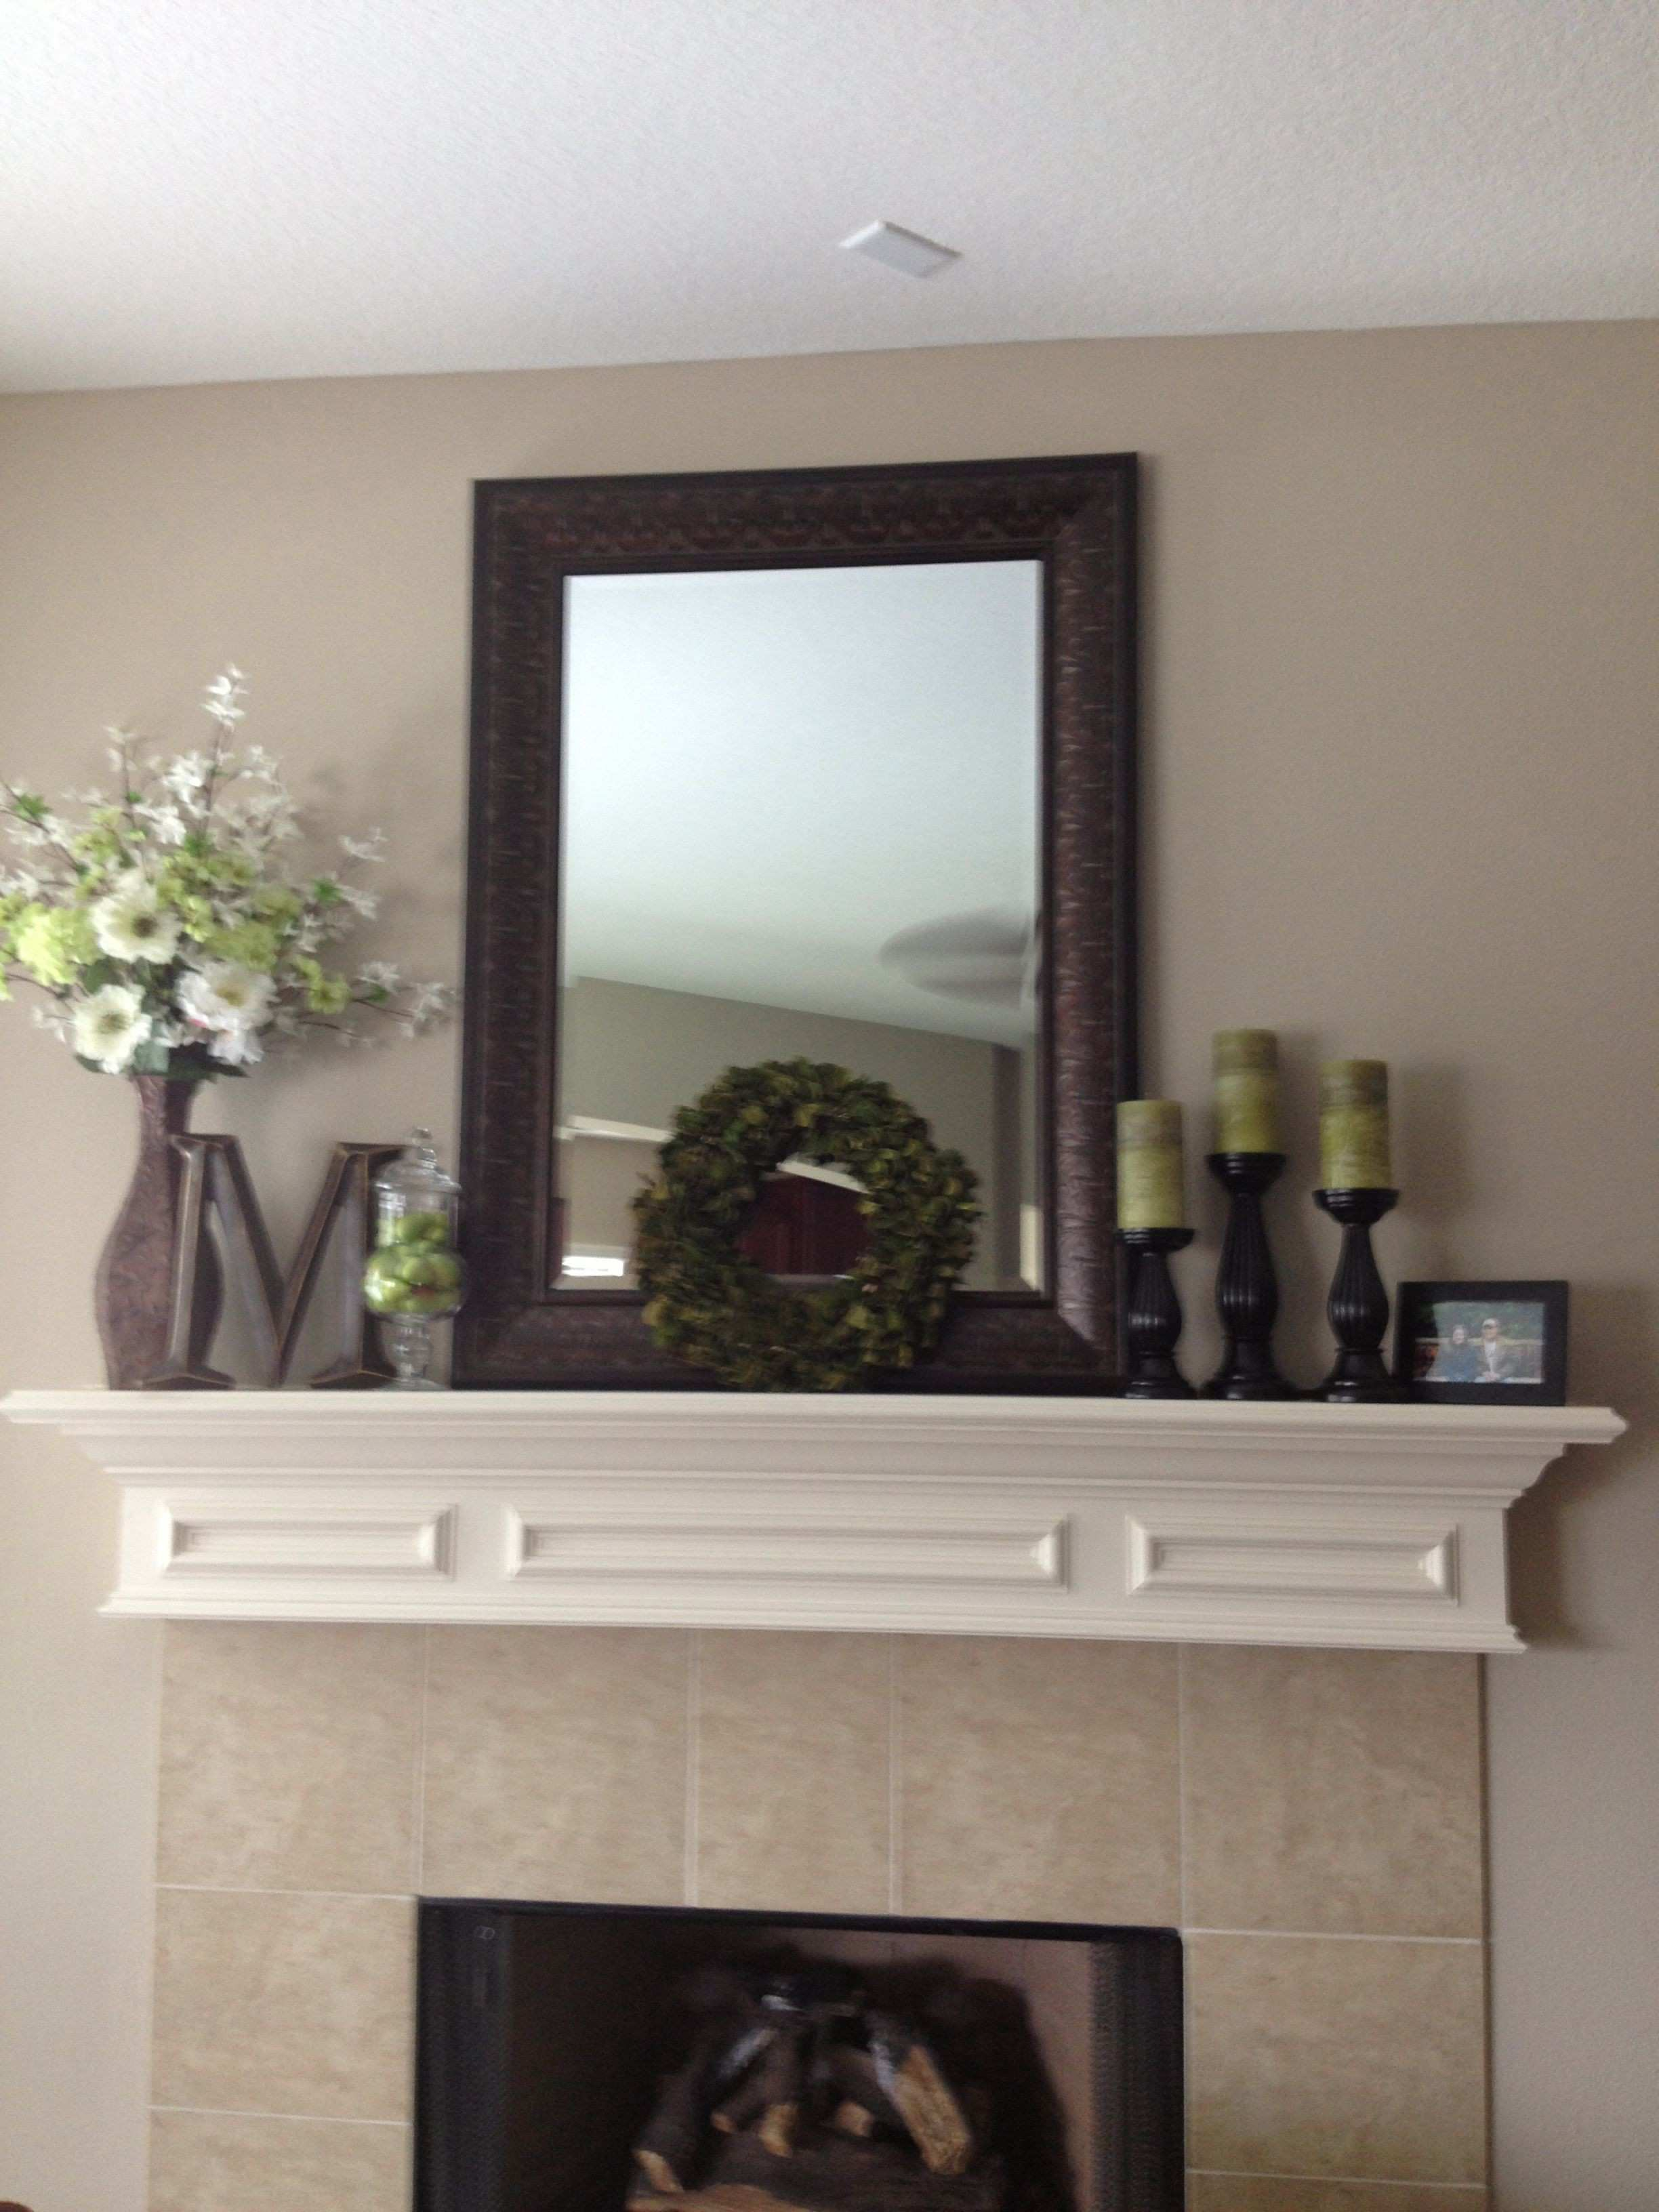 Mantle decor By me Mirror Kirklands Candles wreath Garden